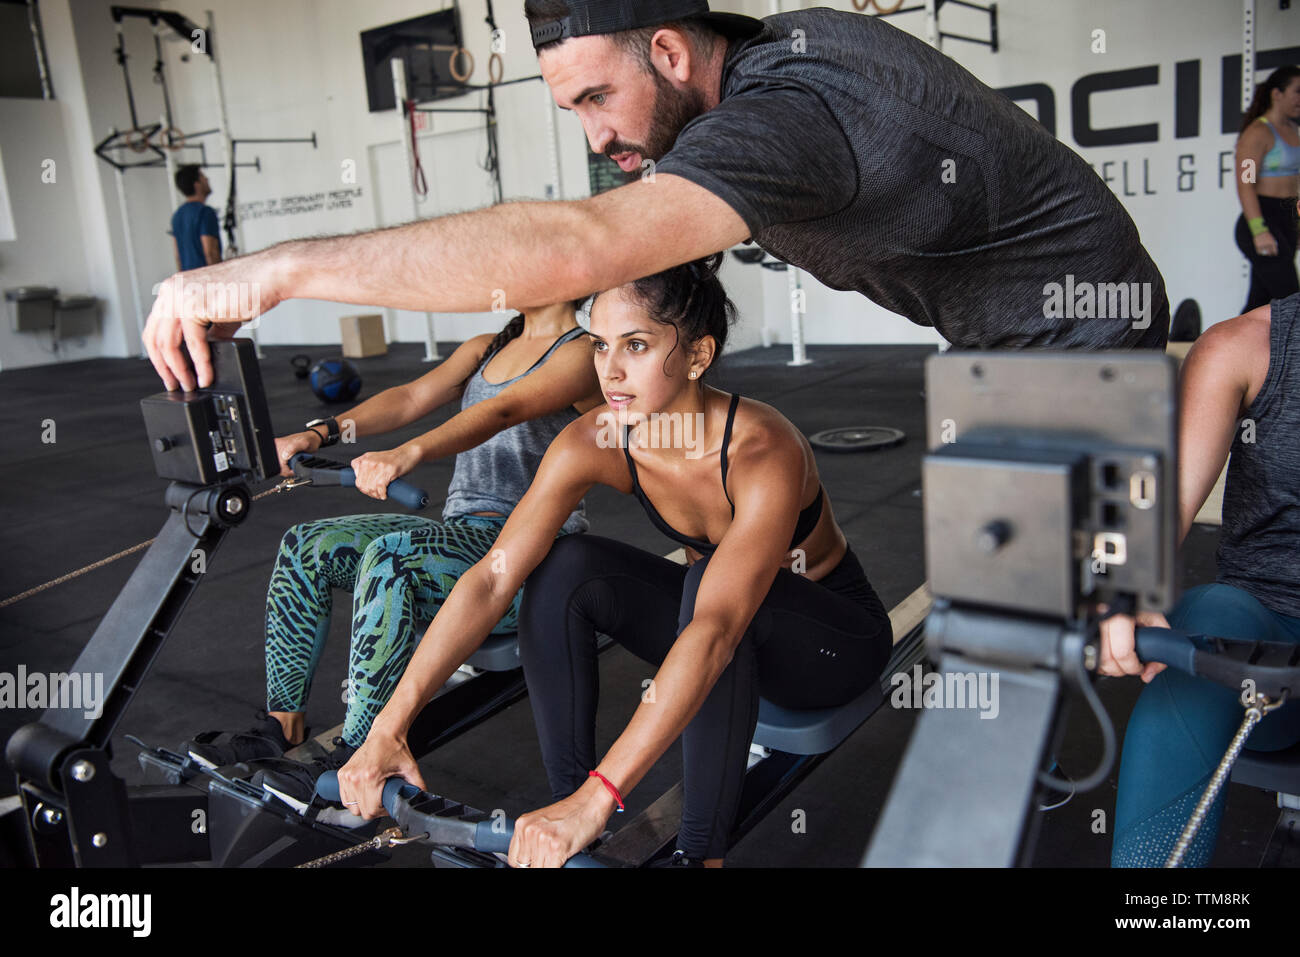 Instructor guiding athletes exercising on rowing machine in crossfit gym - Stock Image